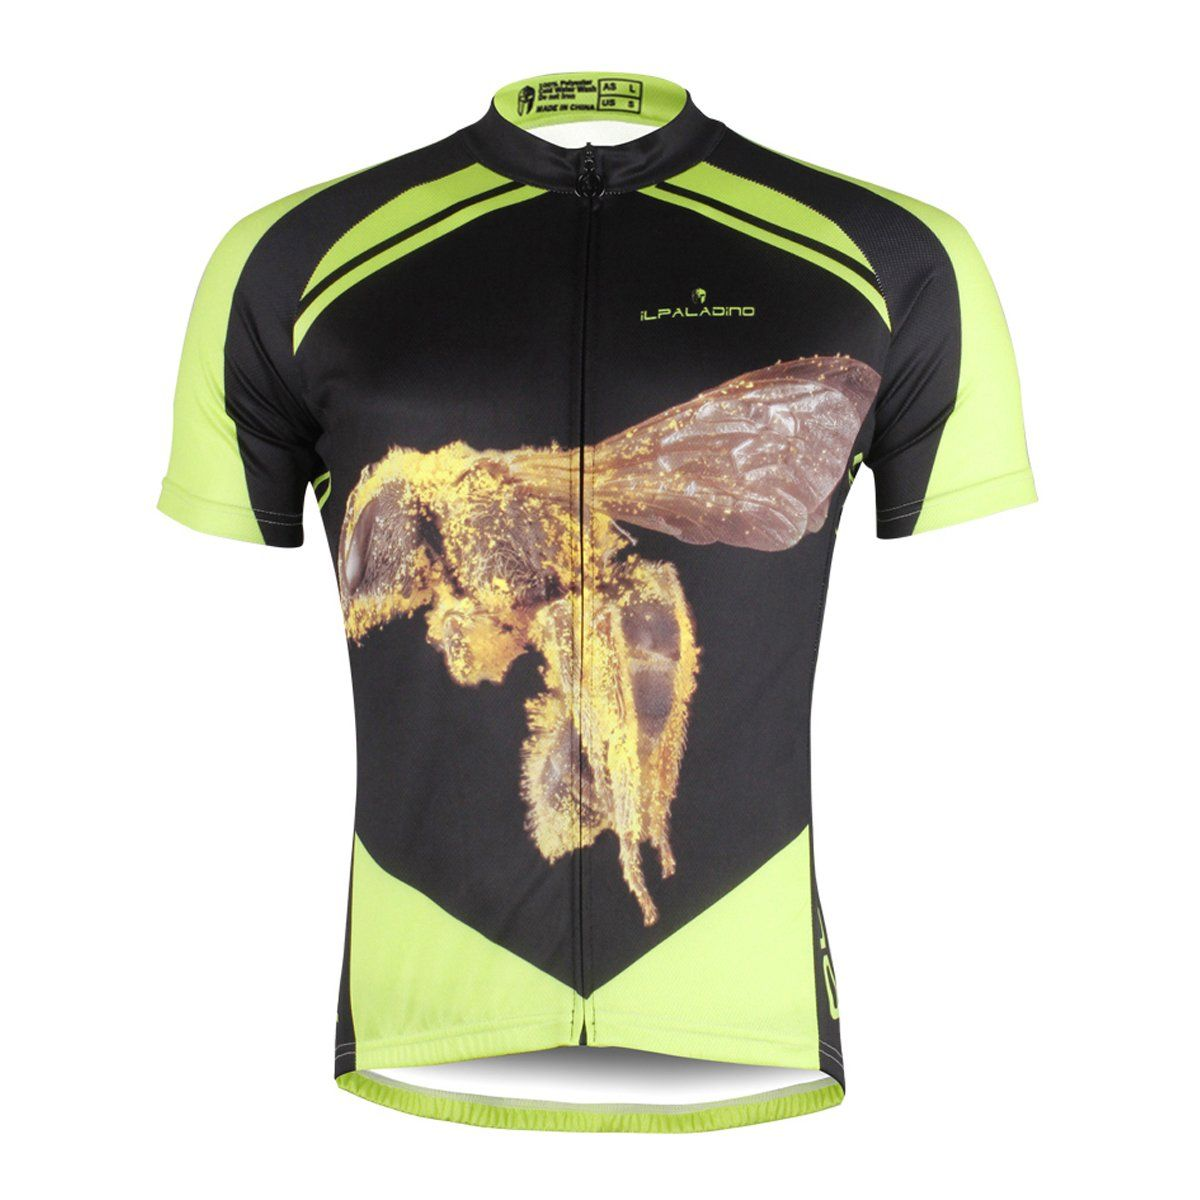 d6822868c ILPALADINO Men s Summer Cycling Jersey Rock Big Hornet Road Bike Shirt  Breathable and Quick Dry Mountain Biking Clothes